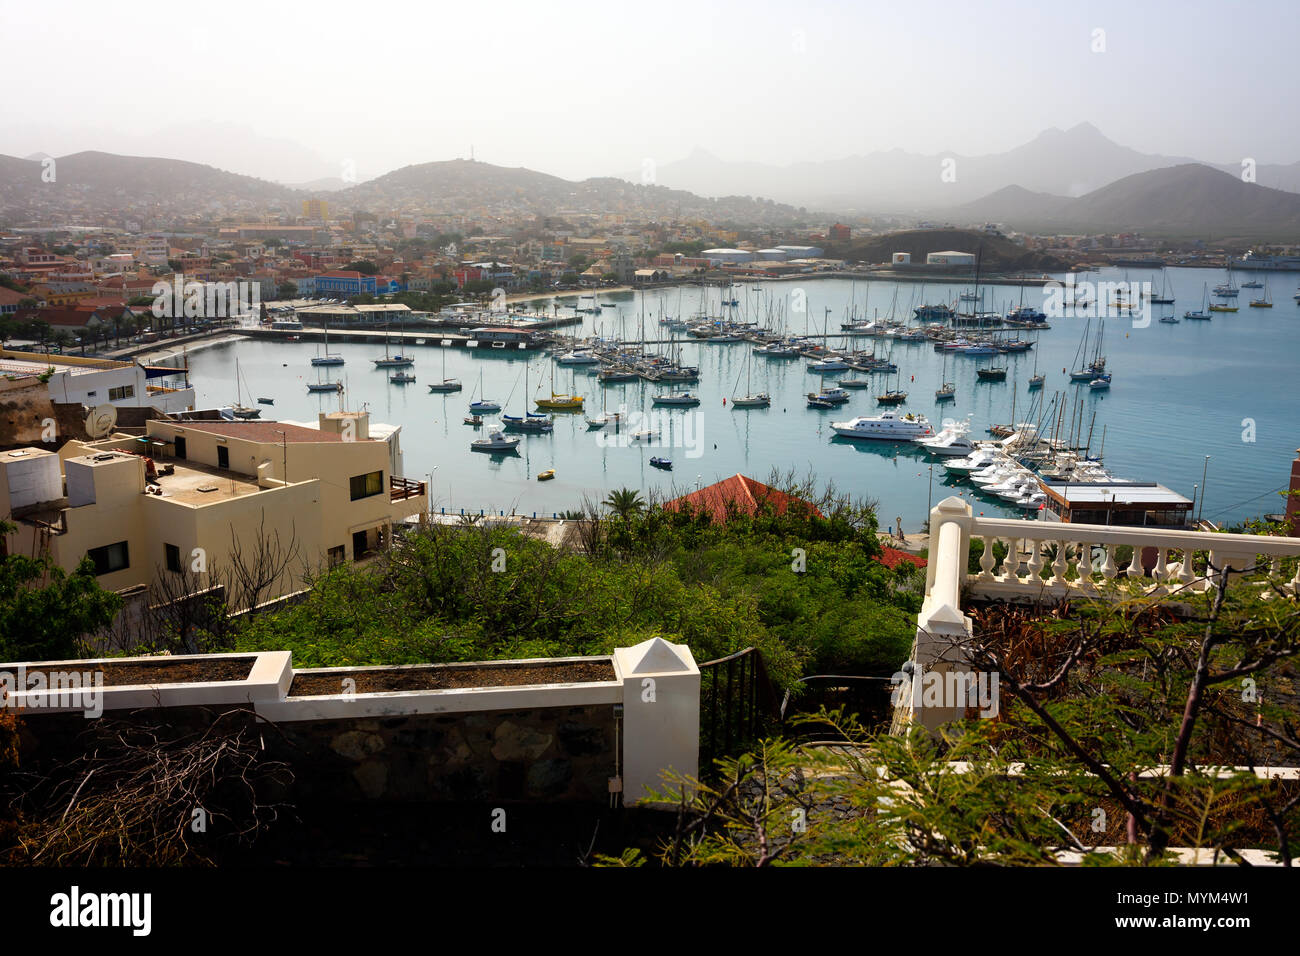 MINDELO, CAPE VERDE - DECEMBER 07, 2015: Marina of Sao Vicente island with boats and yachts and view of the Mindelo port city Stock Photo